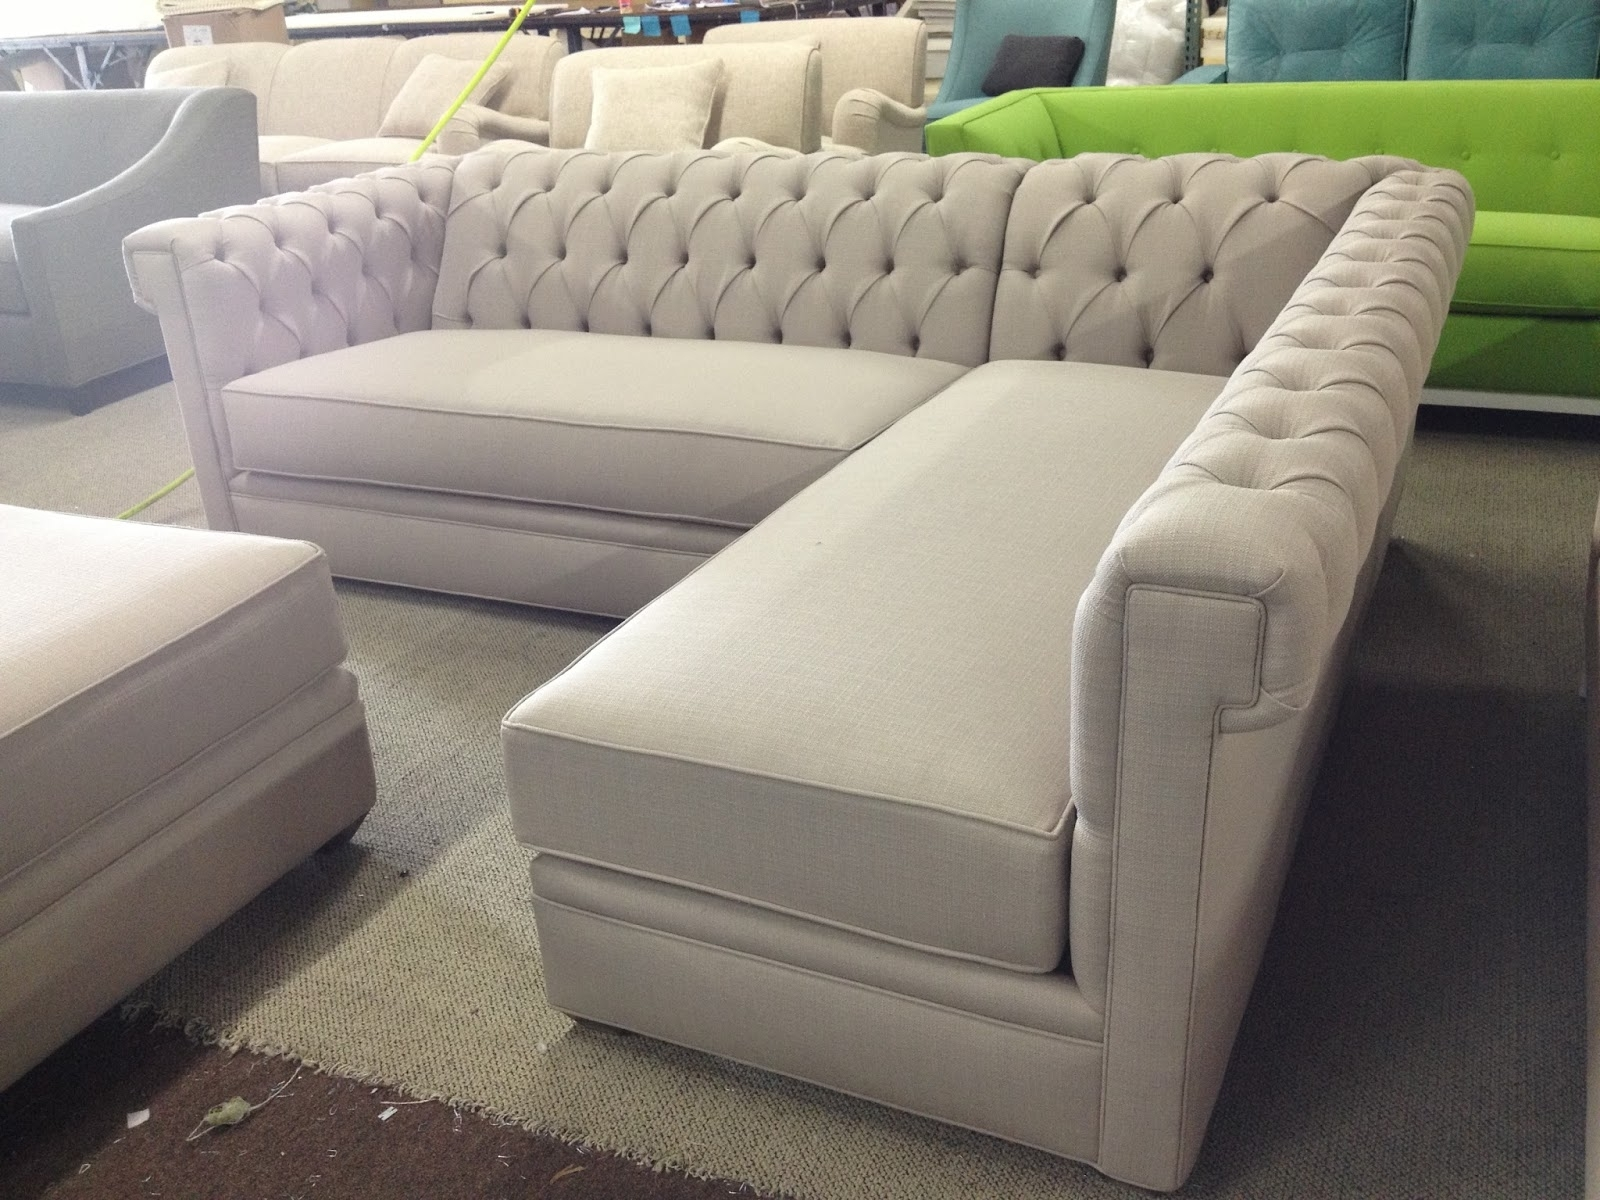 Unique Tufted Sectional With Chaise 98 On Living Room Sofa Ideas regarding Most Recently Released Tufted Sectionals With Chaise